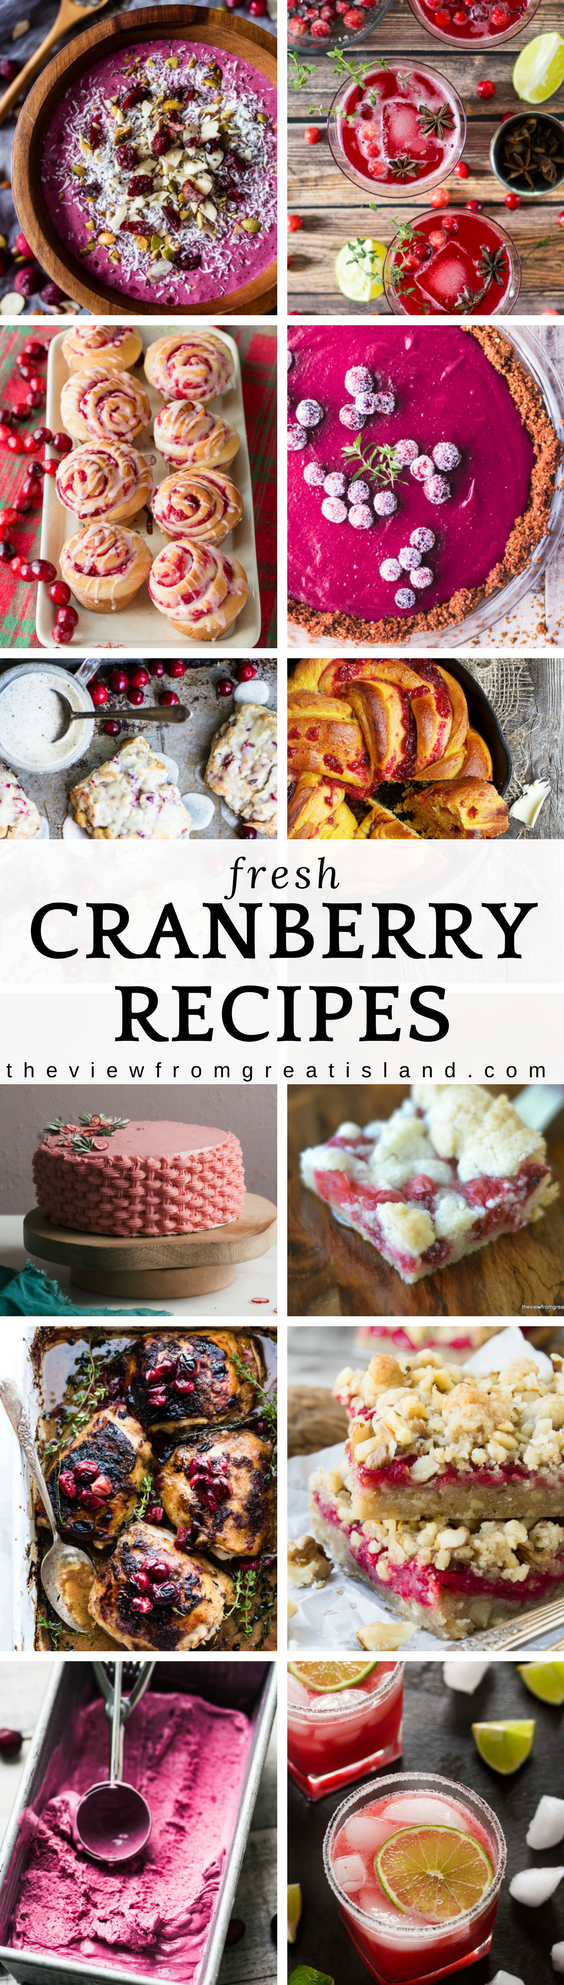 What to Eat Now: Fresh Cranberries ~ I've gathered the best fresh cranberry recipes to help you savor those tangy red berries before they disappear for another year. #cranberries #cranberryrecipes #Thanksgivingrecipes #cranberrysauce #cranberrycake #cranberrybread #cranberrycocktail #fall #cranberryjuice #cranberryrolls #cranberryjam #cranberryhotpepperjelly #cranberryscones #cranberrychicken #cranberrypotroast #cranberryicecresam #sugaredcranberries #roundup